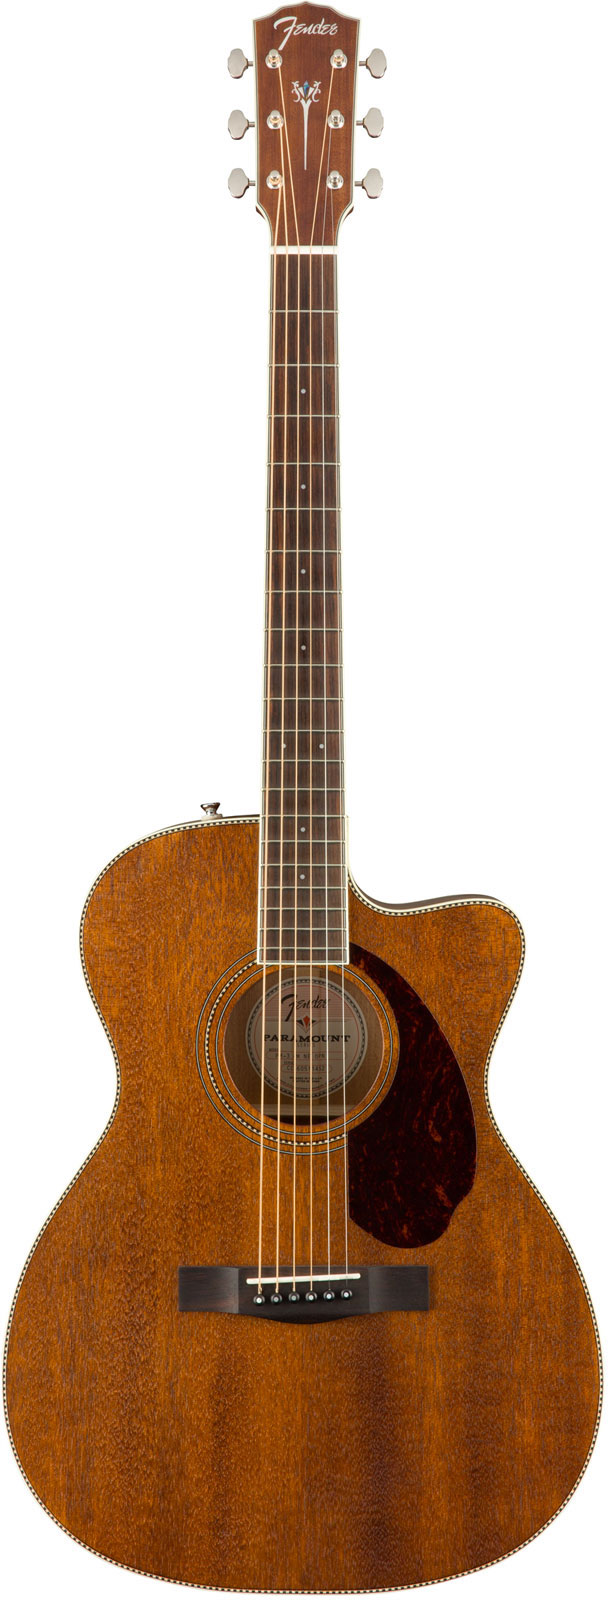 FENDER PARAMOUNT PM-3 TRIPLE-0 CW ALL MAHOGANY NATURAL